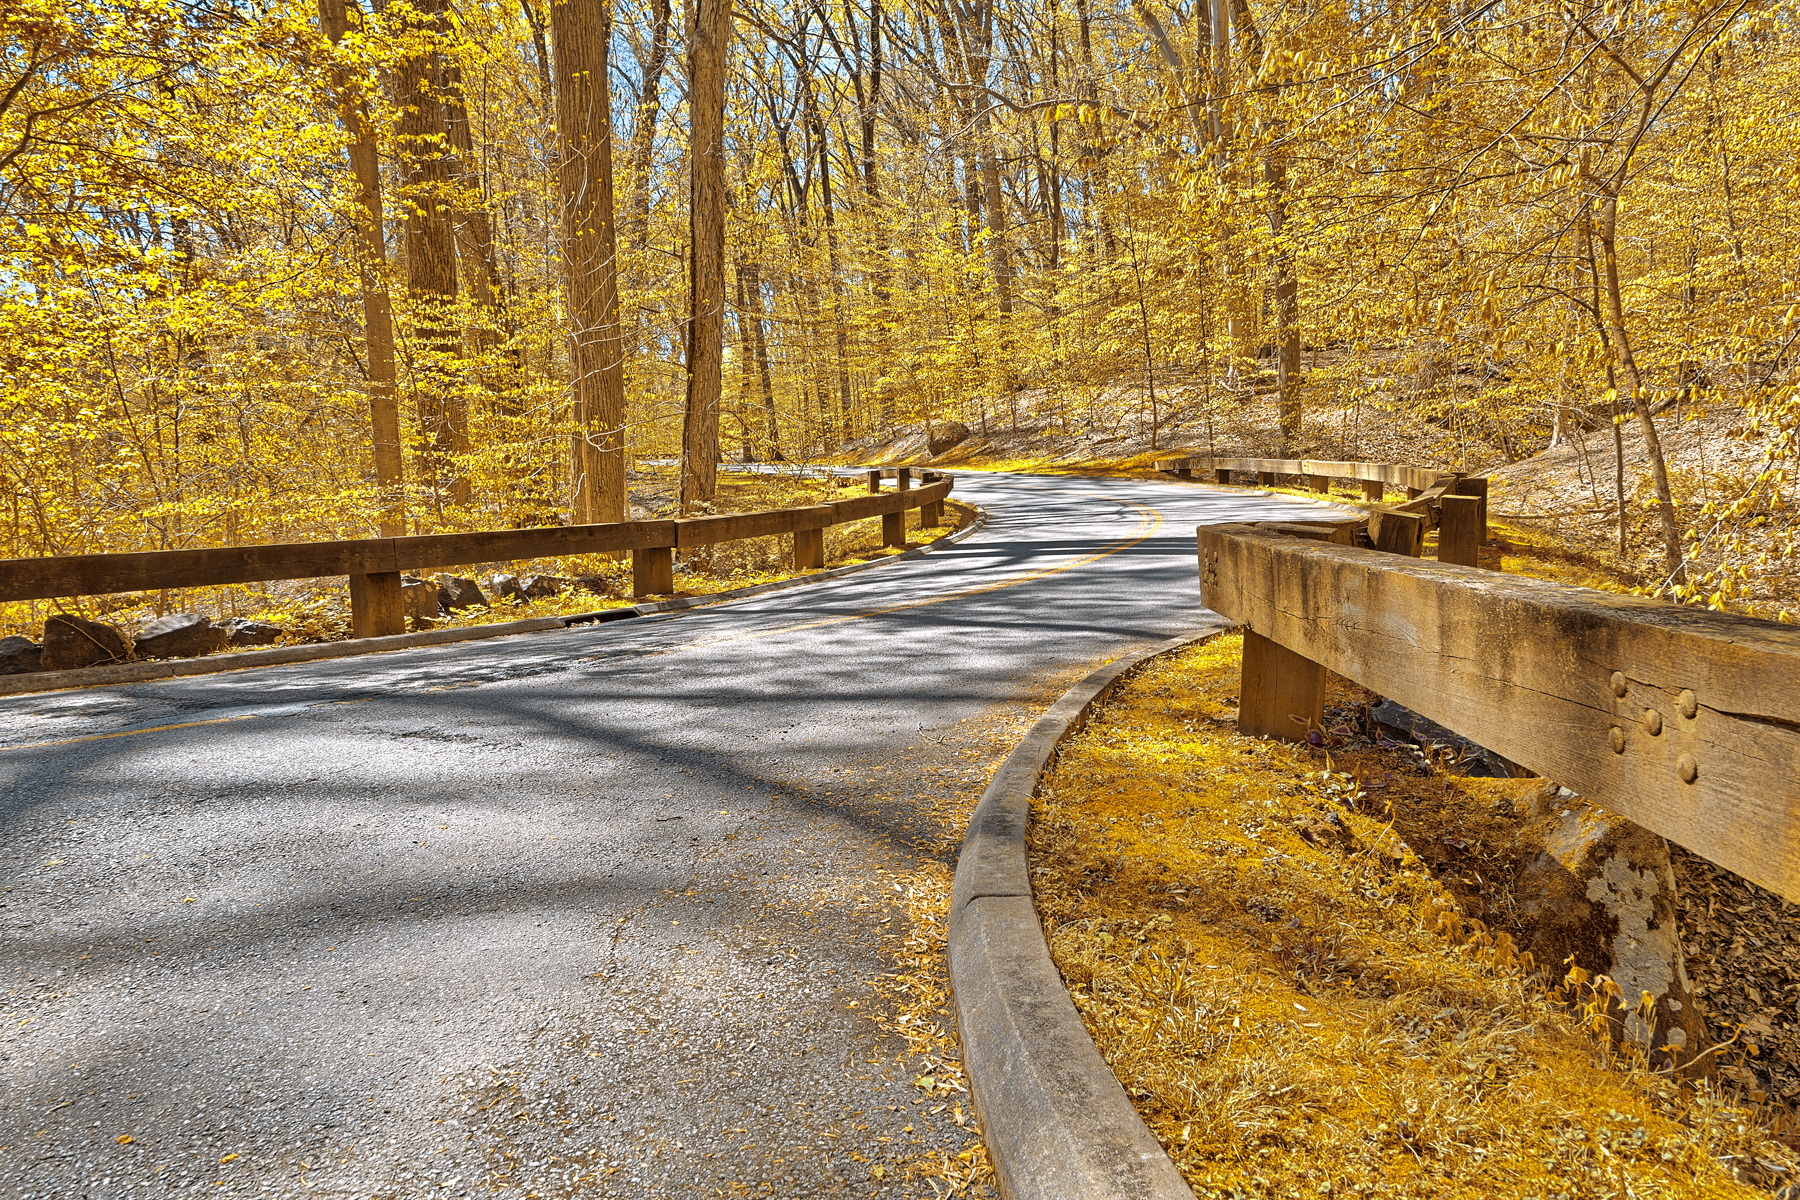 Gold forest road - hdr photo